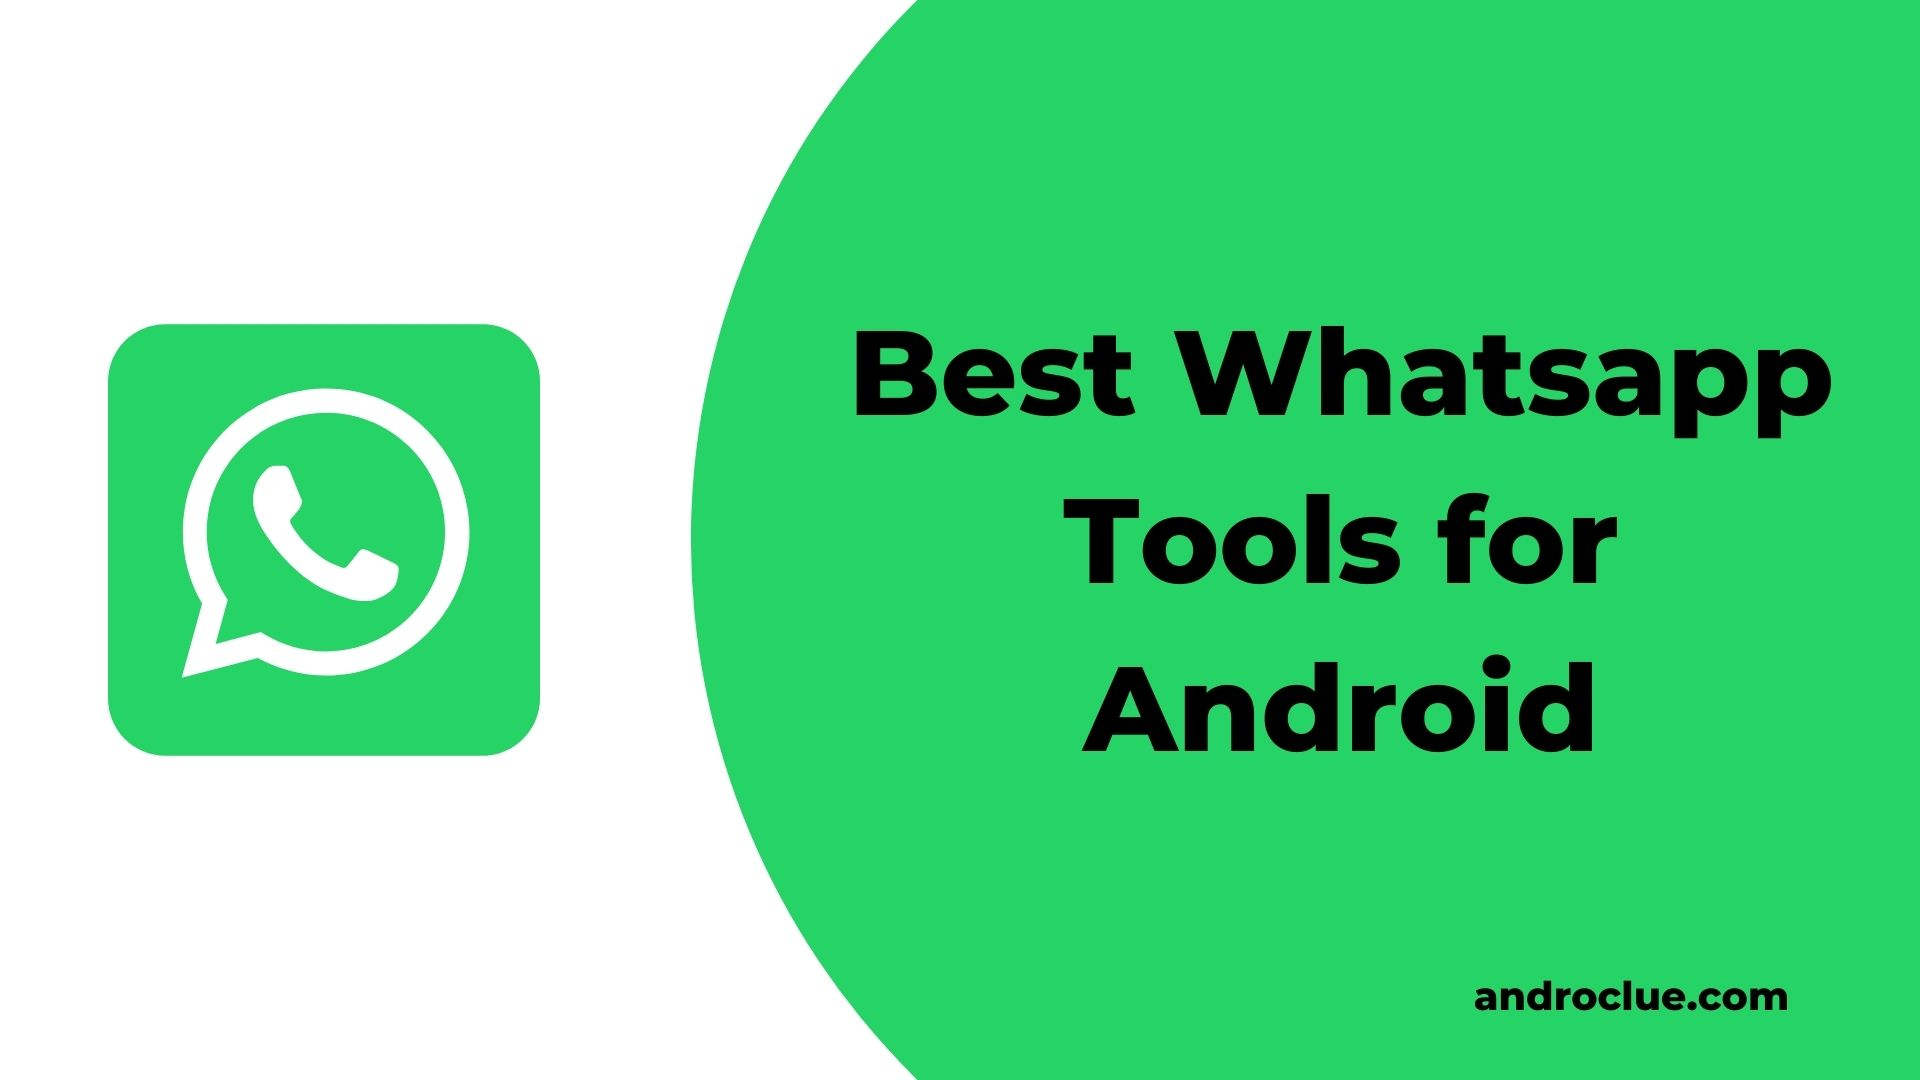 Best Whatsapp Tools